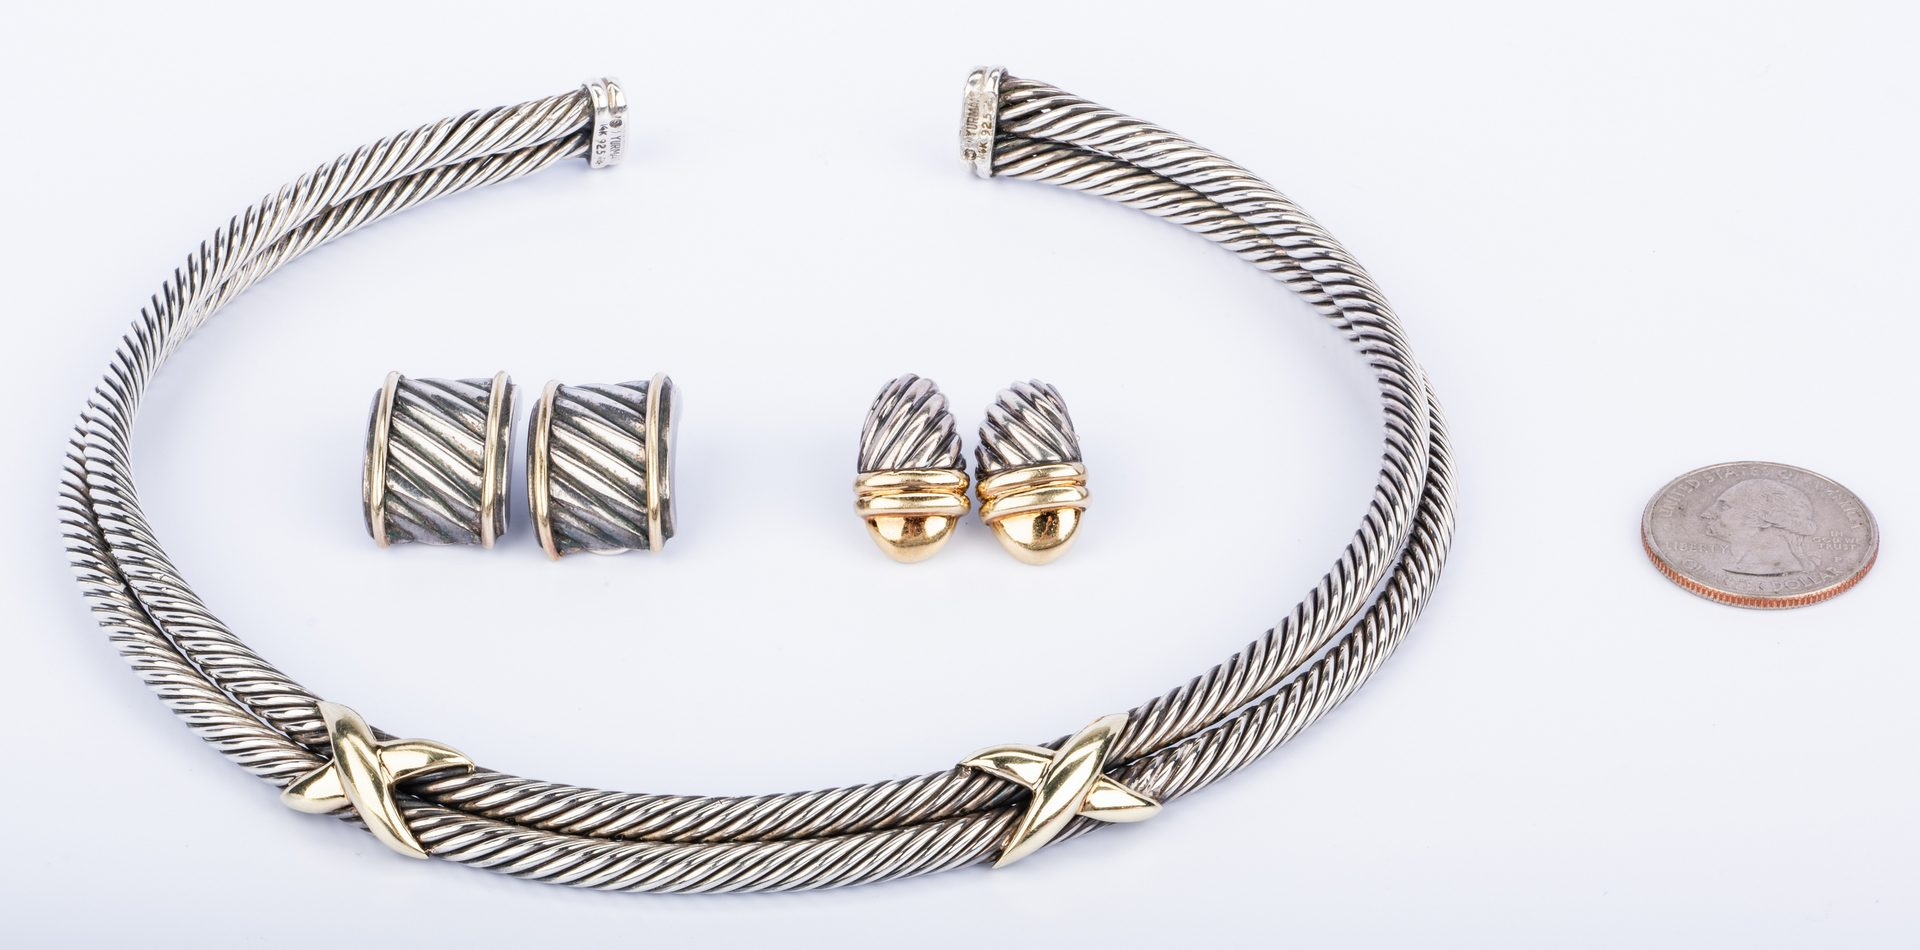 Lot 854: Group Yurman SS/14K Jewelry